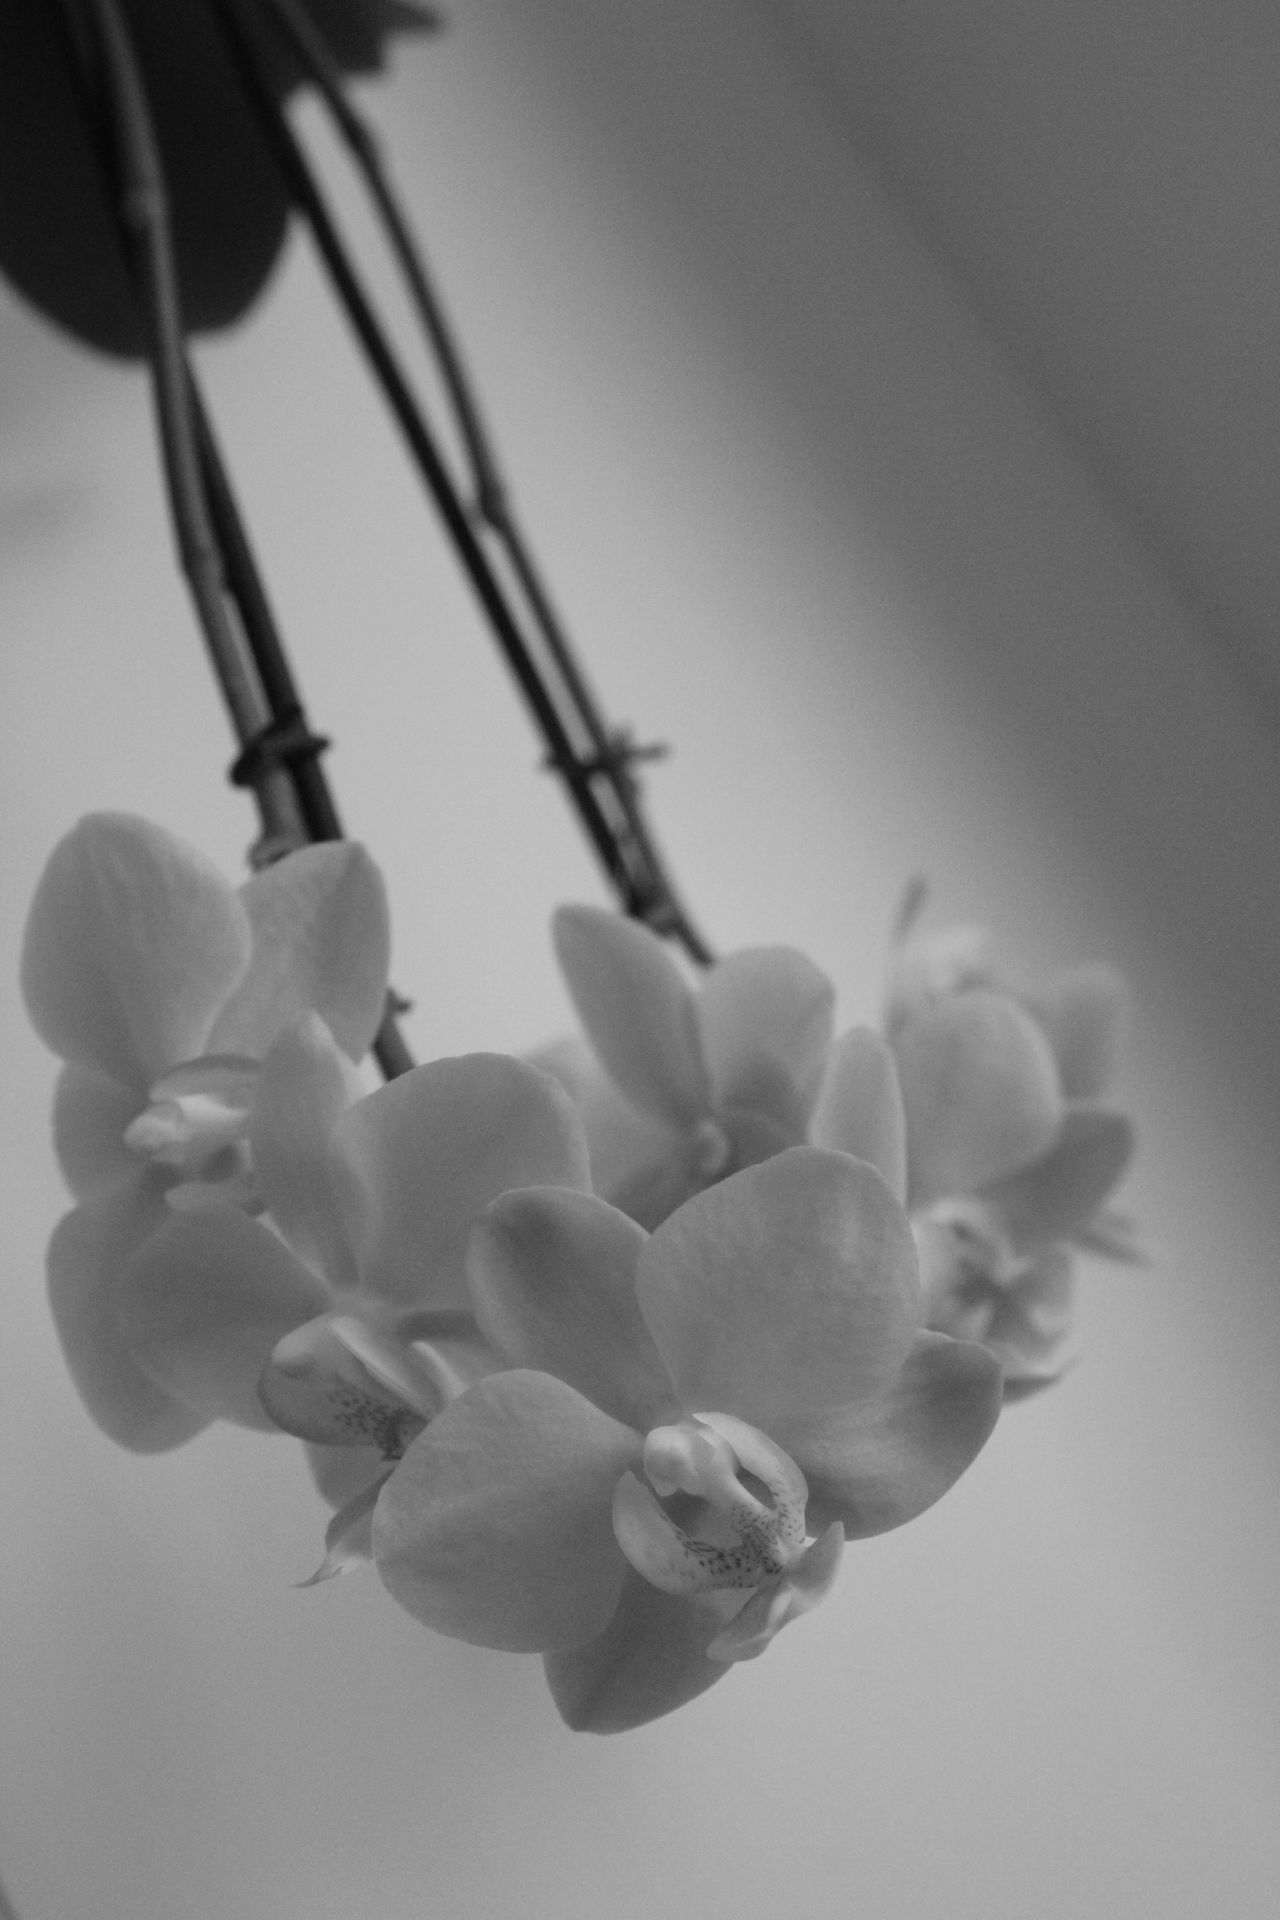 Beauty In Nature Black & White Black And White Blossom Blossoms  Close-up Flower Flower Head Flowers Growth Nature No People Orchid Orchid Blossoms Orchids Over Head Plant